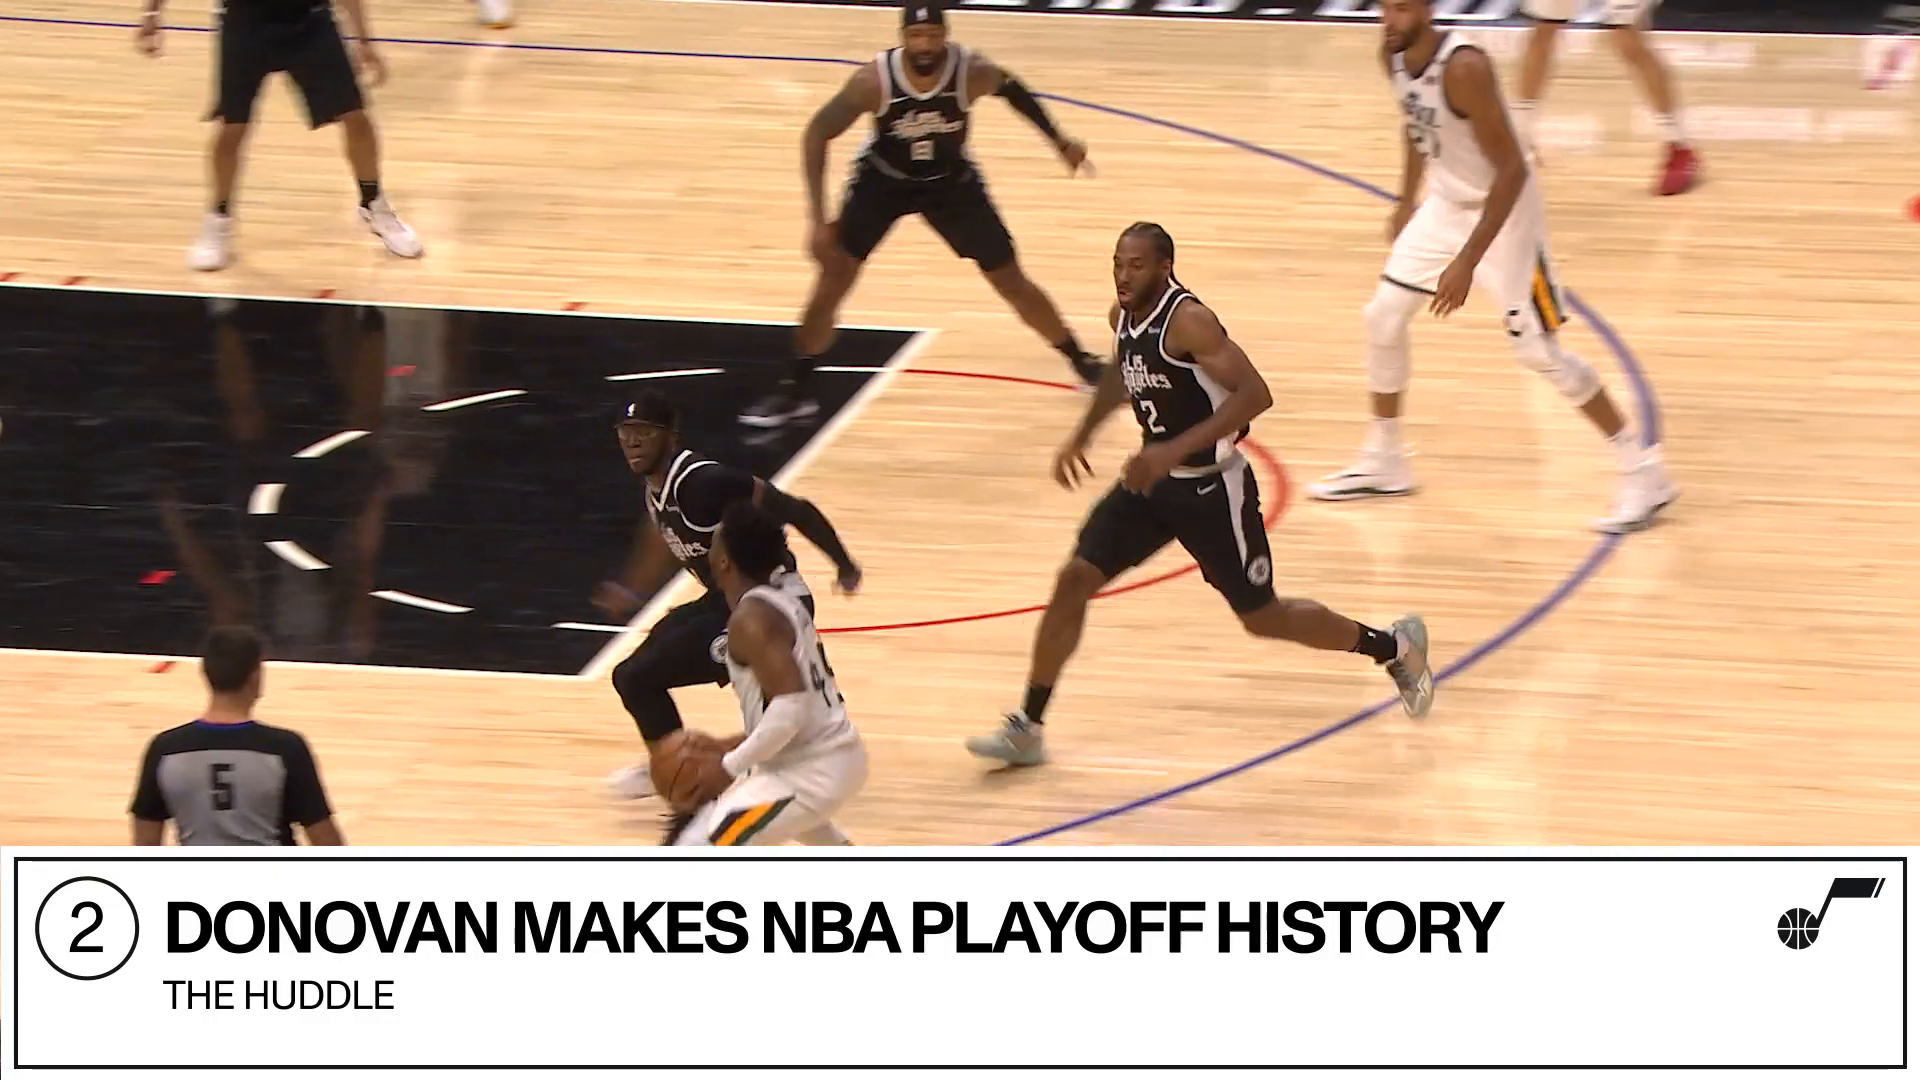 The Huddle: Game 5, Donovan makes history + vote for NBA Community Assist